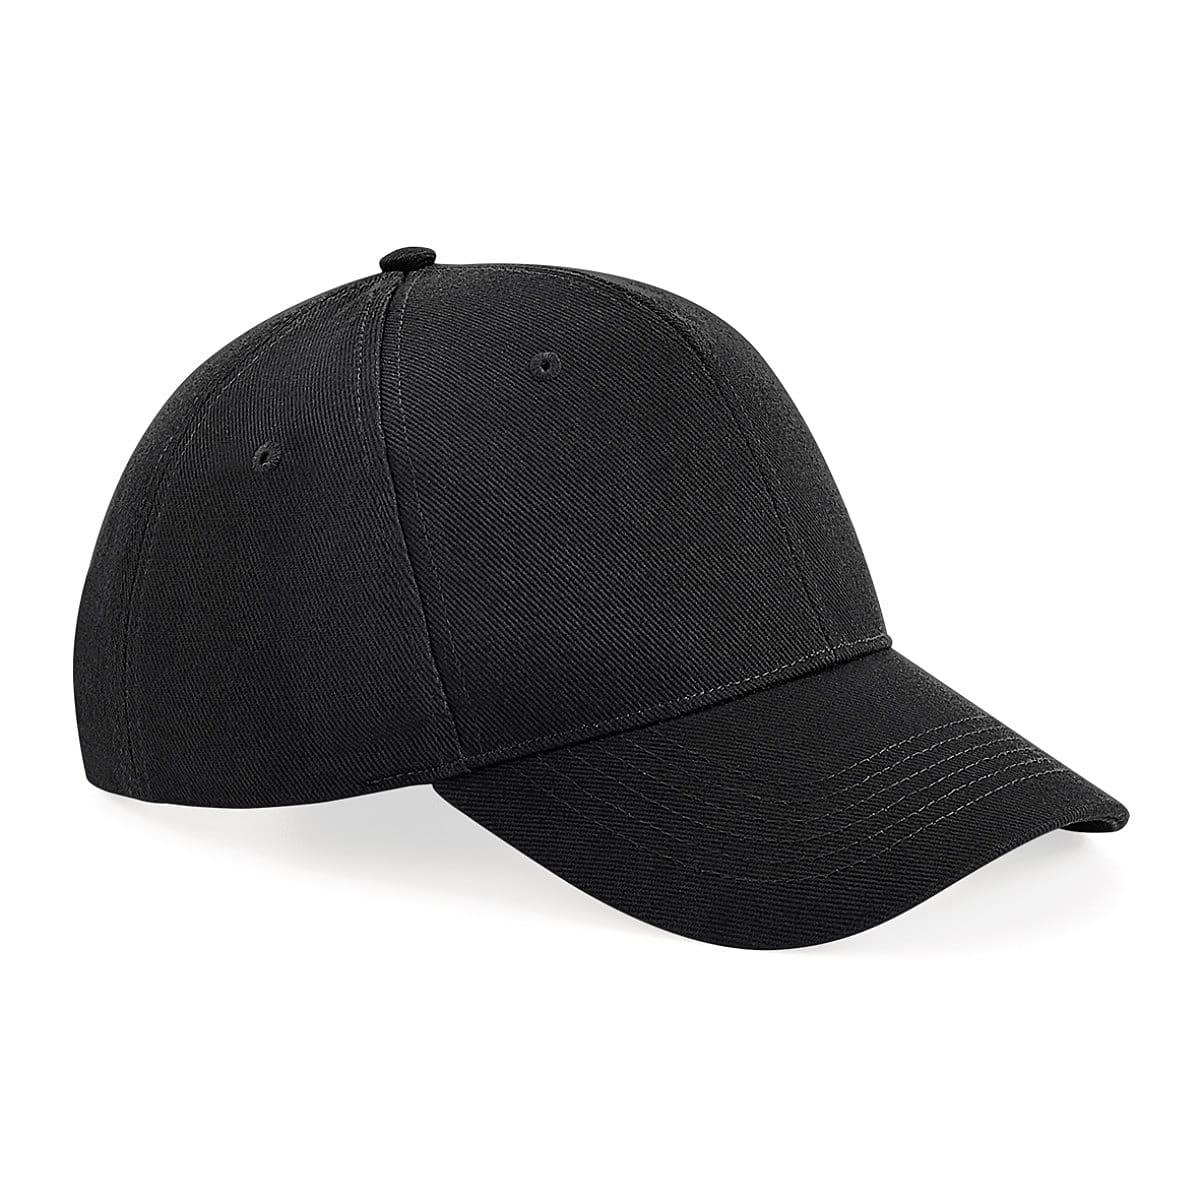 Beechfield Untimate 6 Panel Cap in Black (Product Code: B18)